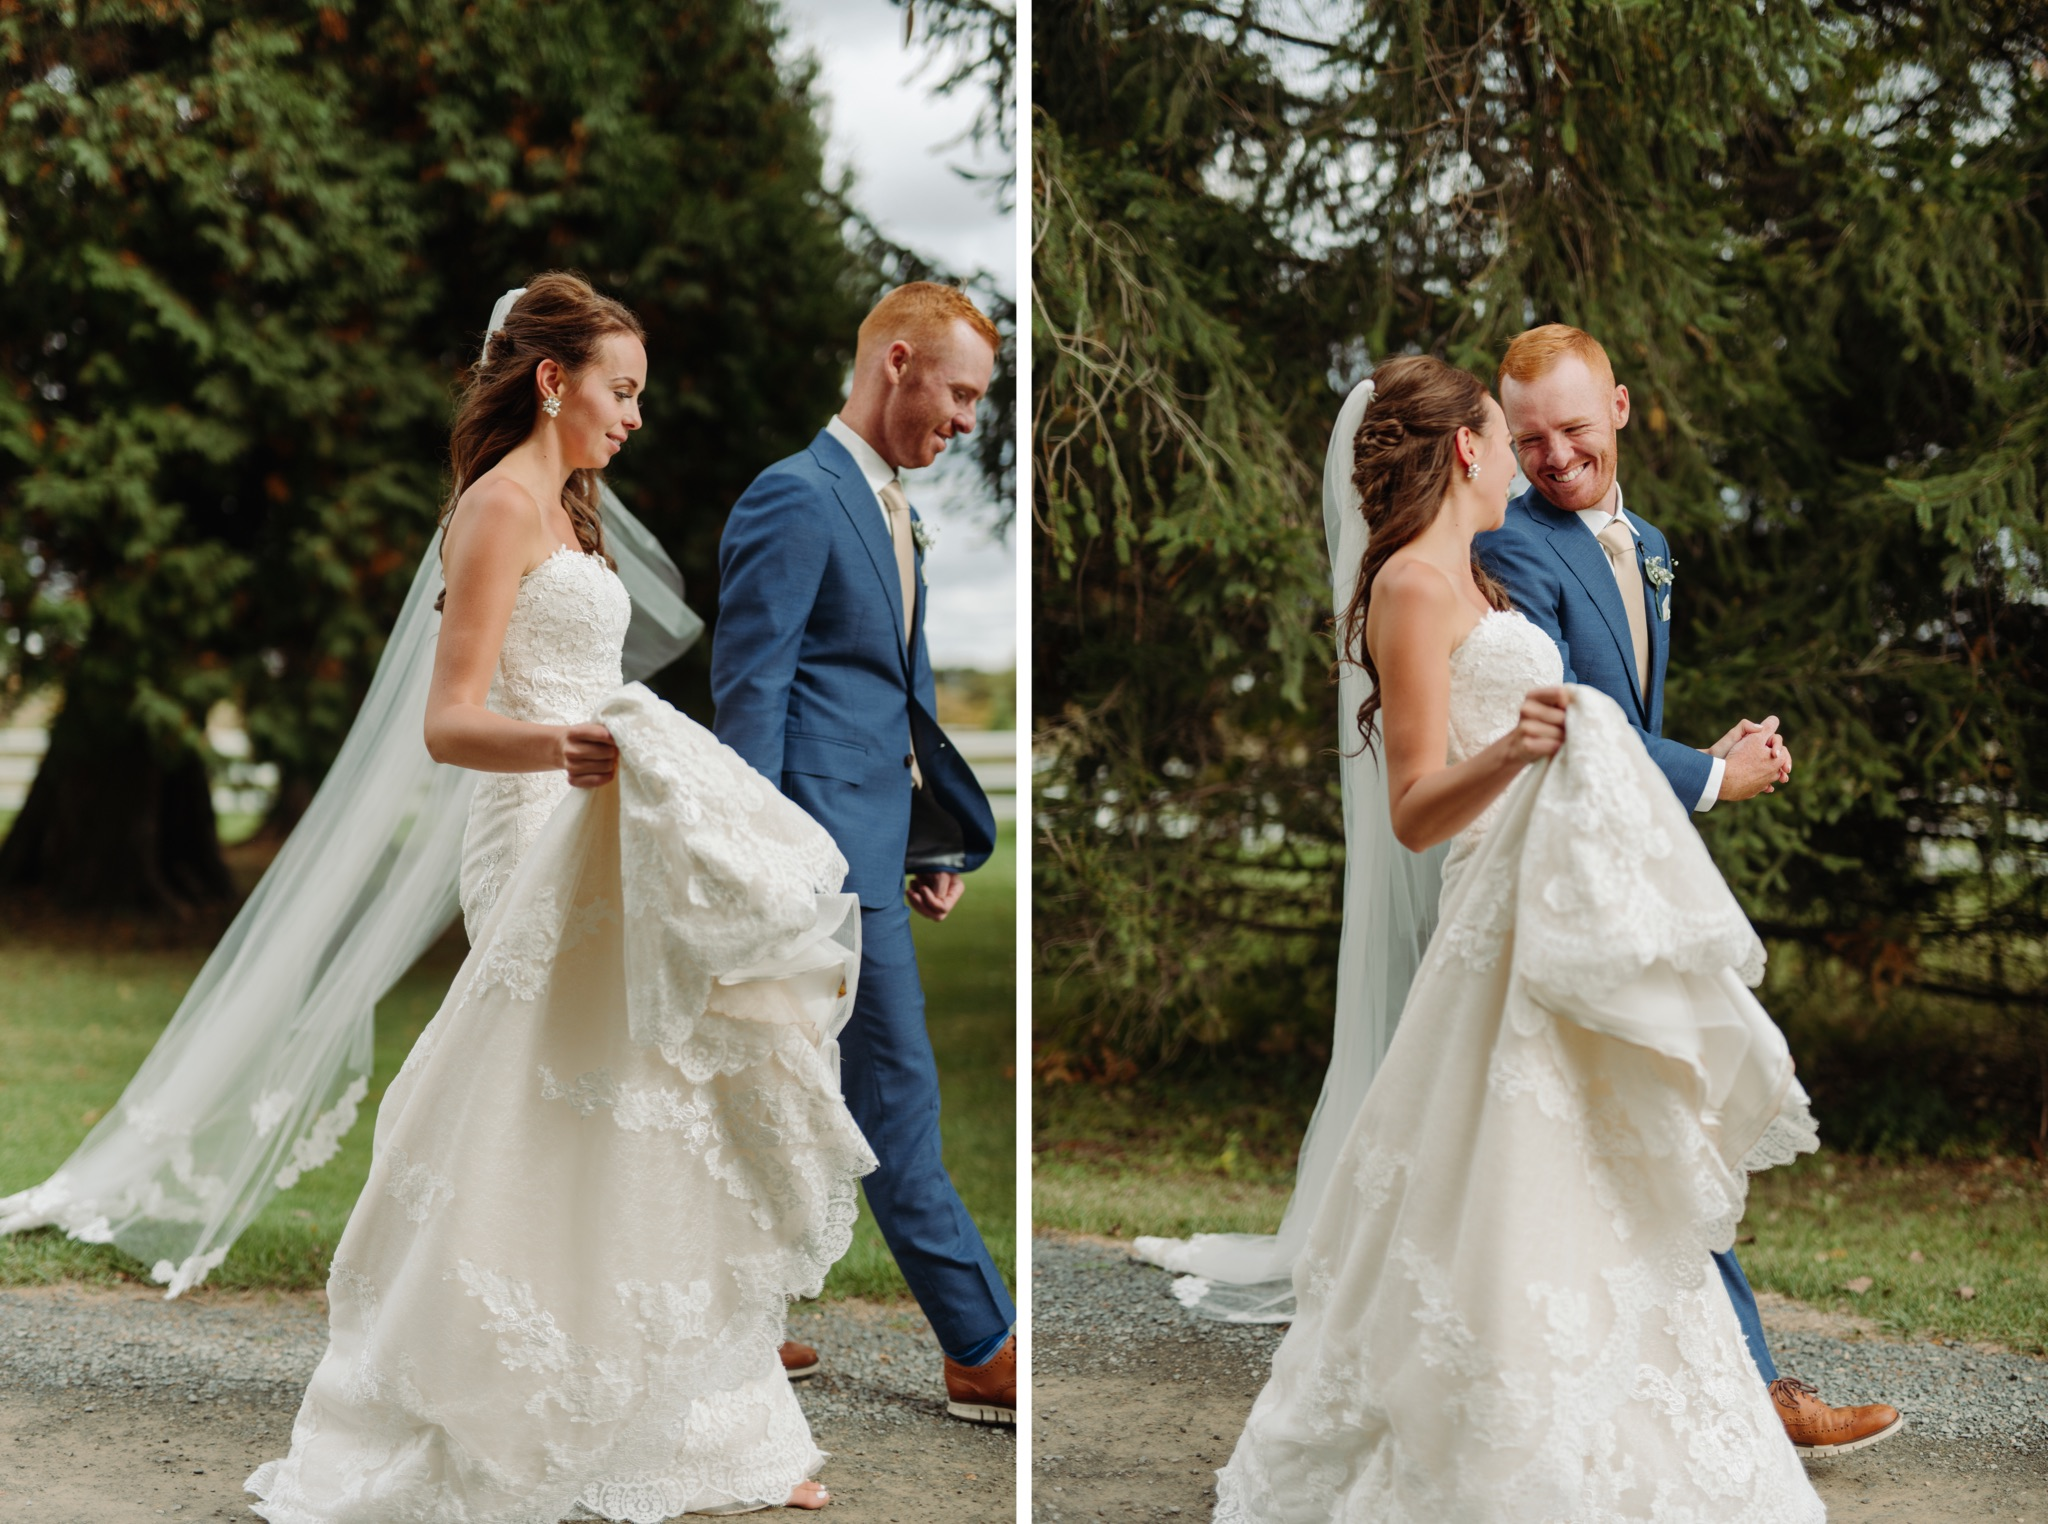 bride holding dress up, holding hands, and walking with groom